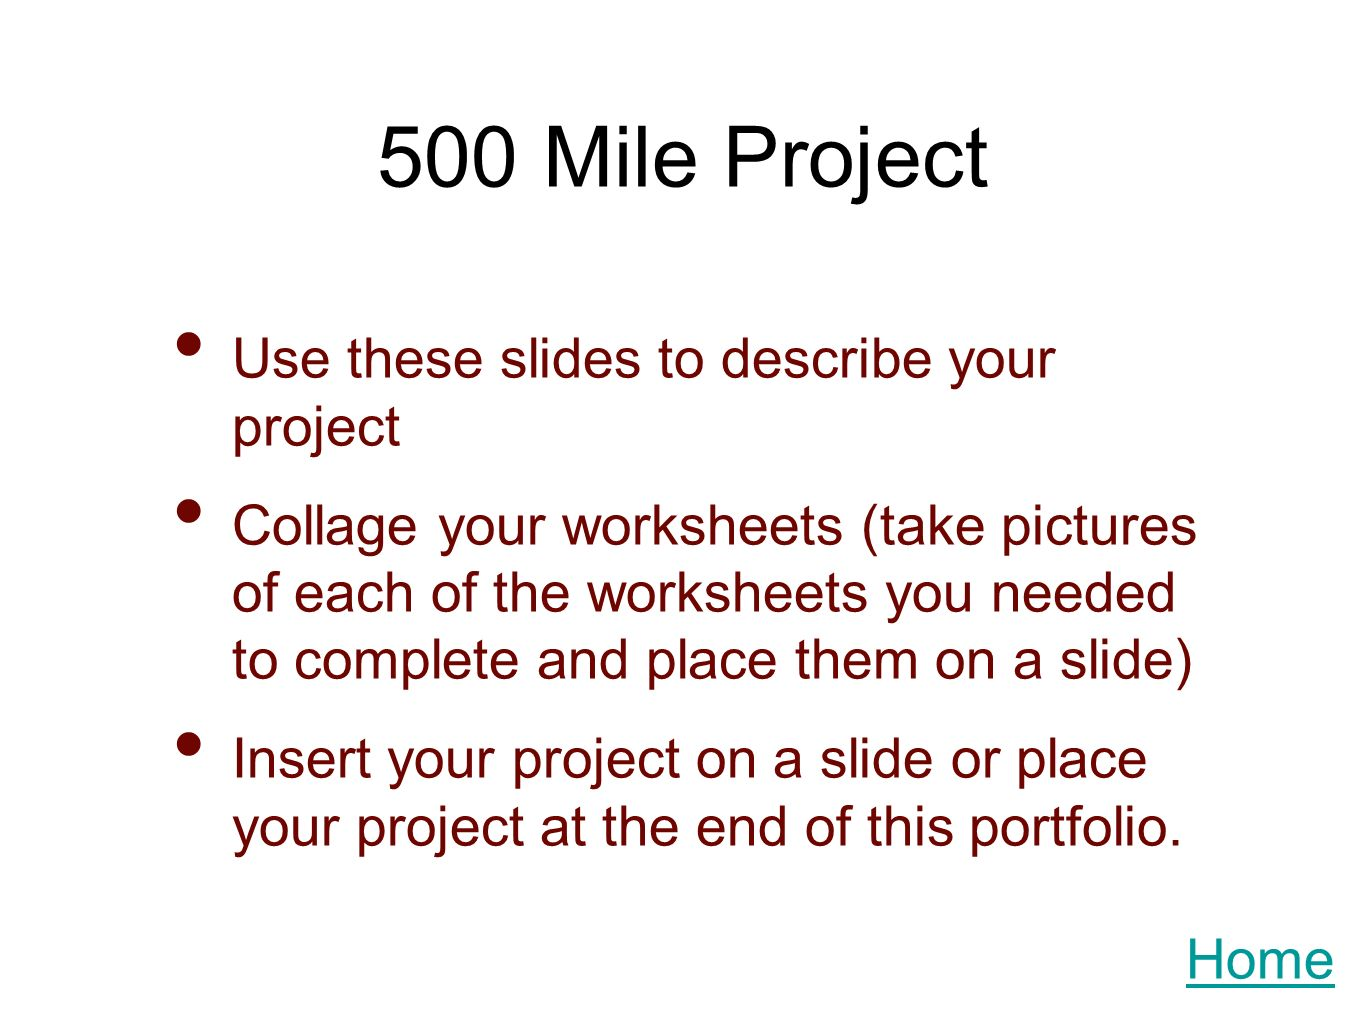 500 Mile Project Use these slides to describe your project Collage your worksheets (take pictures of each of the worksheets you needed to complete and place them on a slide) Insert your project on a slide or place your project at the end of this portfolio.